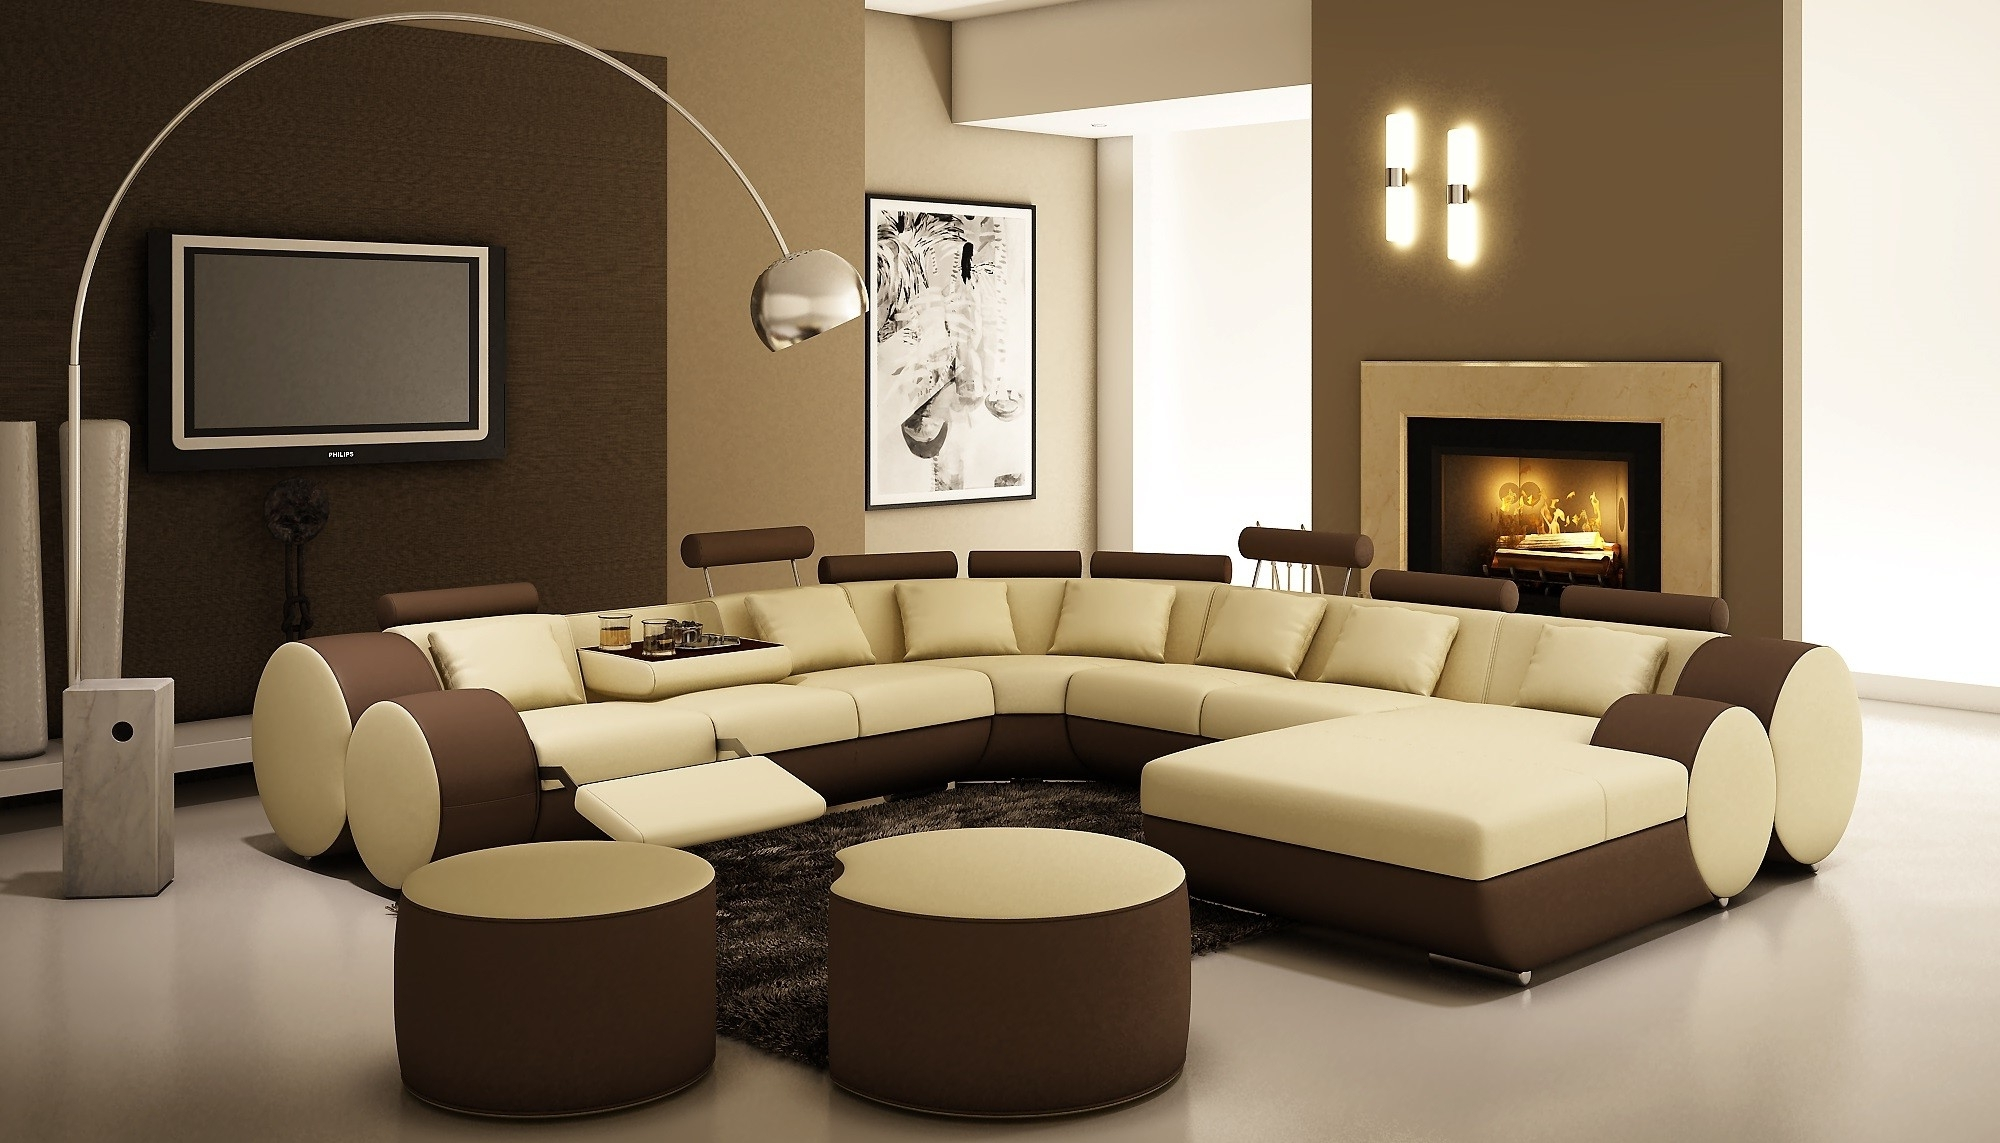 Widely Used Unique Sectional Sofas With Regard To Unique Sectional Sofas (View 14 of 15)